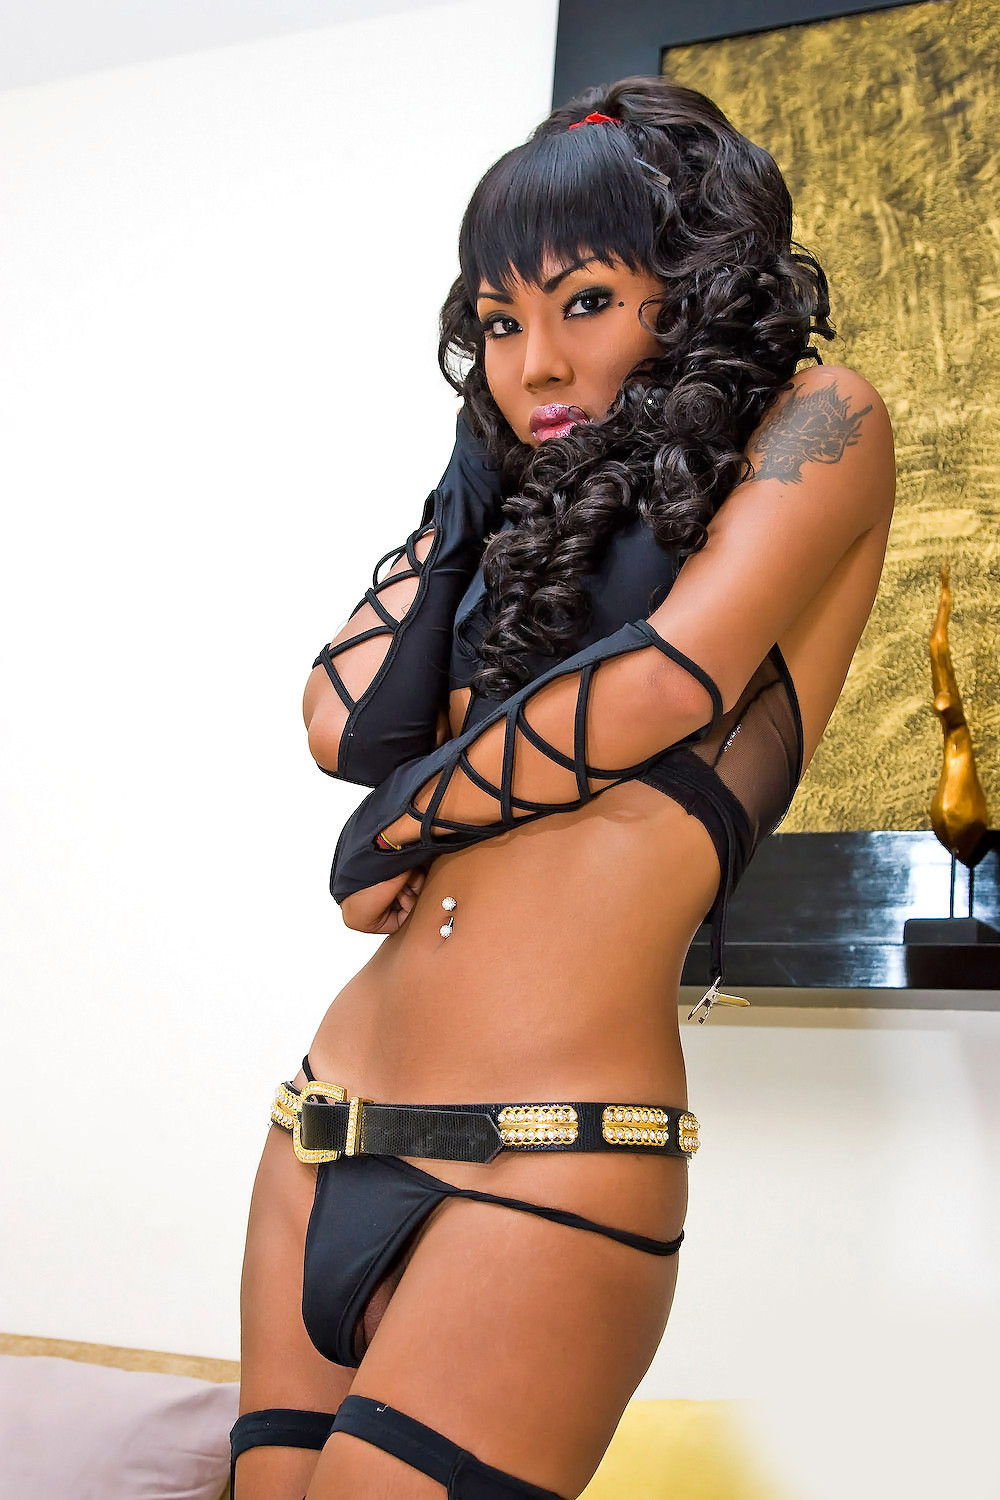 Ladyboy areeya in a one piece fishnet cat suit